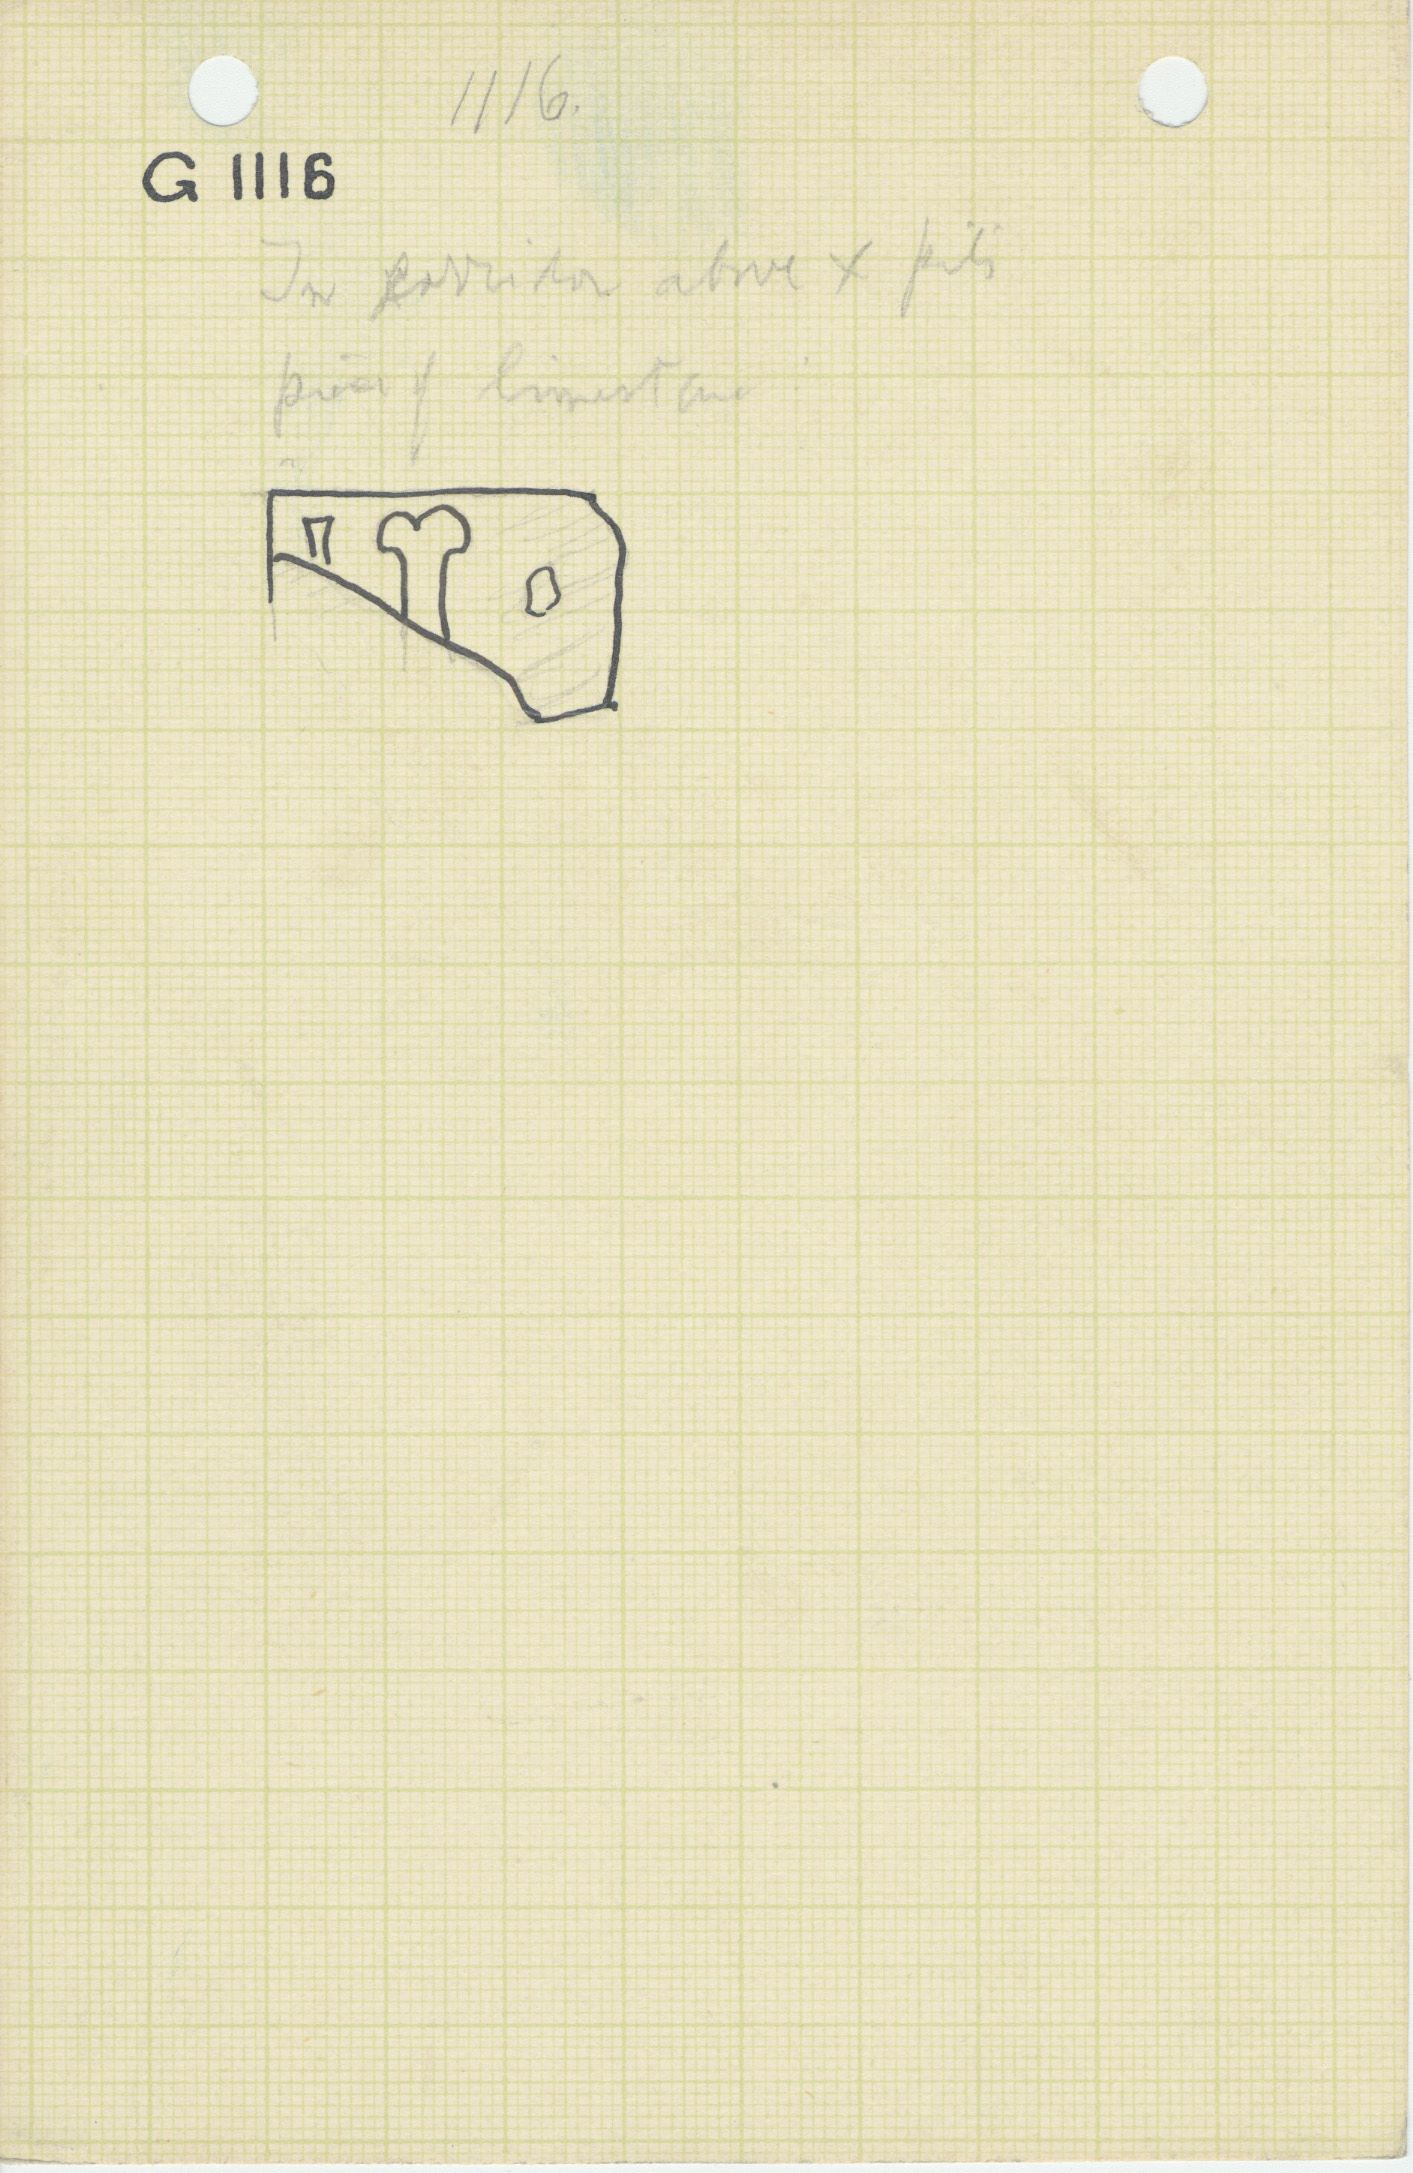 Maps and plans: G 1116, Debris east of mastaba, fragment of limestone tray for Opening of the Mouth set